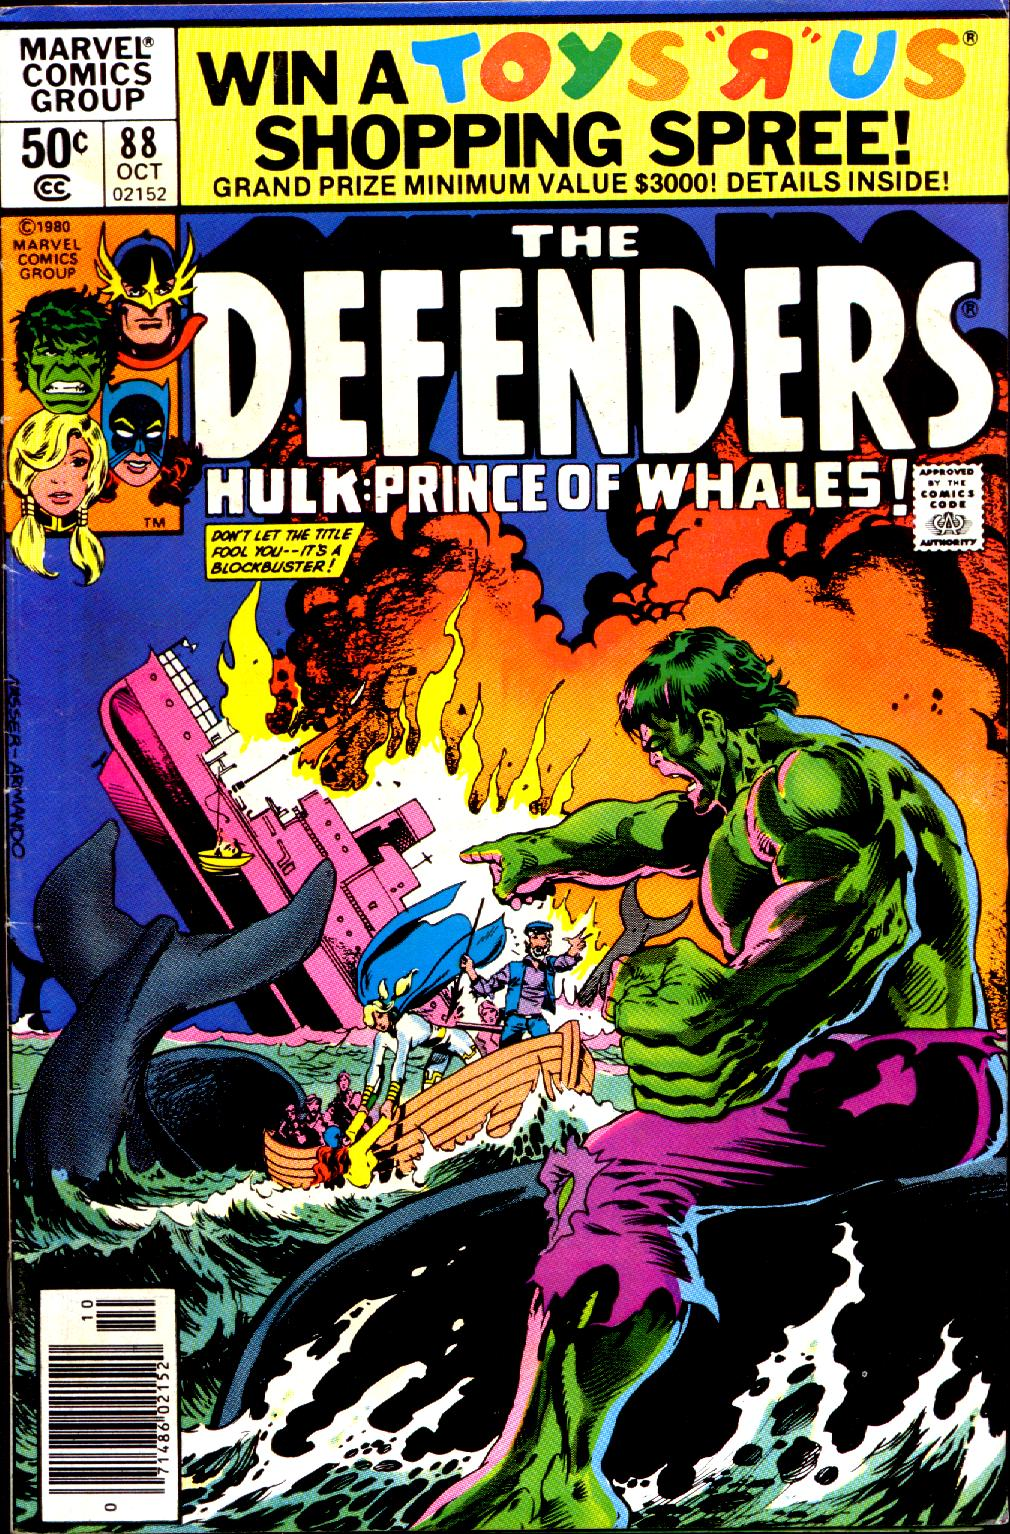 The Defenders (1972) #88, cover penciled by Mike Nasser & inked by Armando Gil.